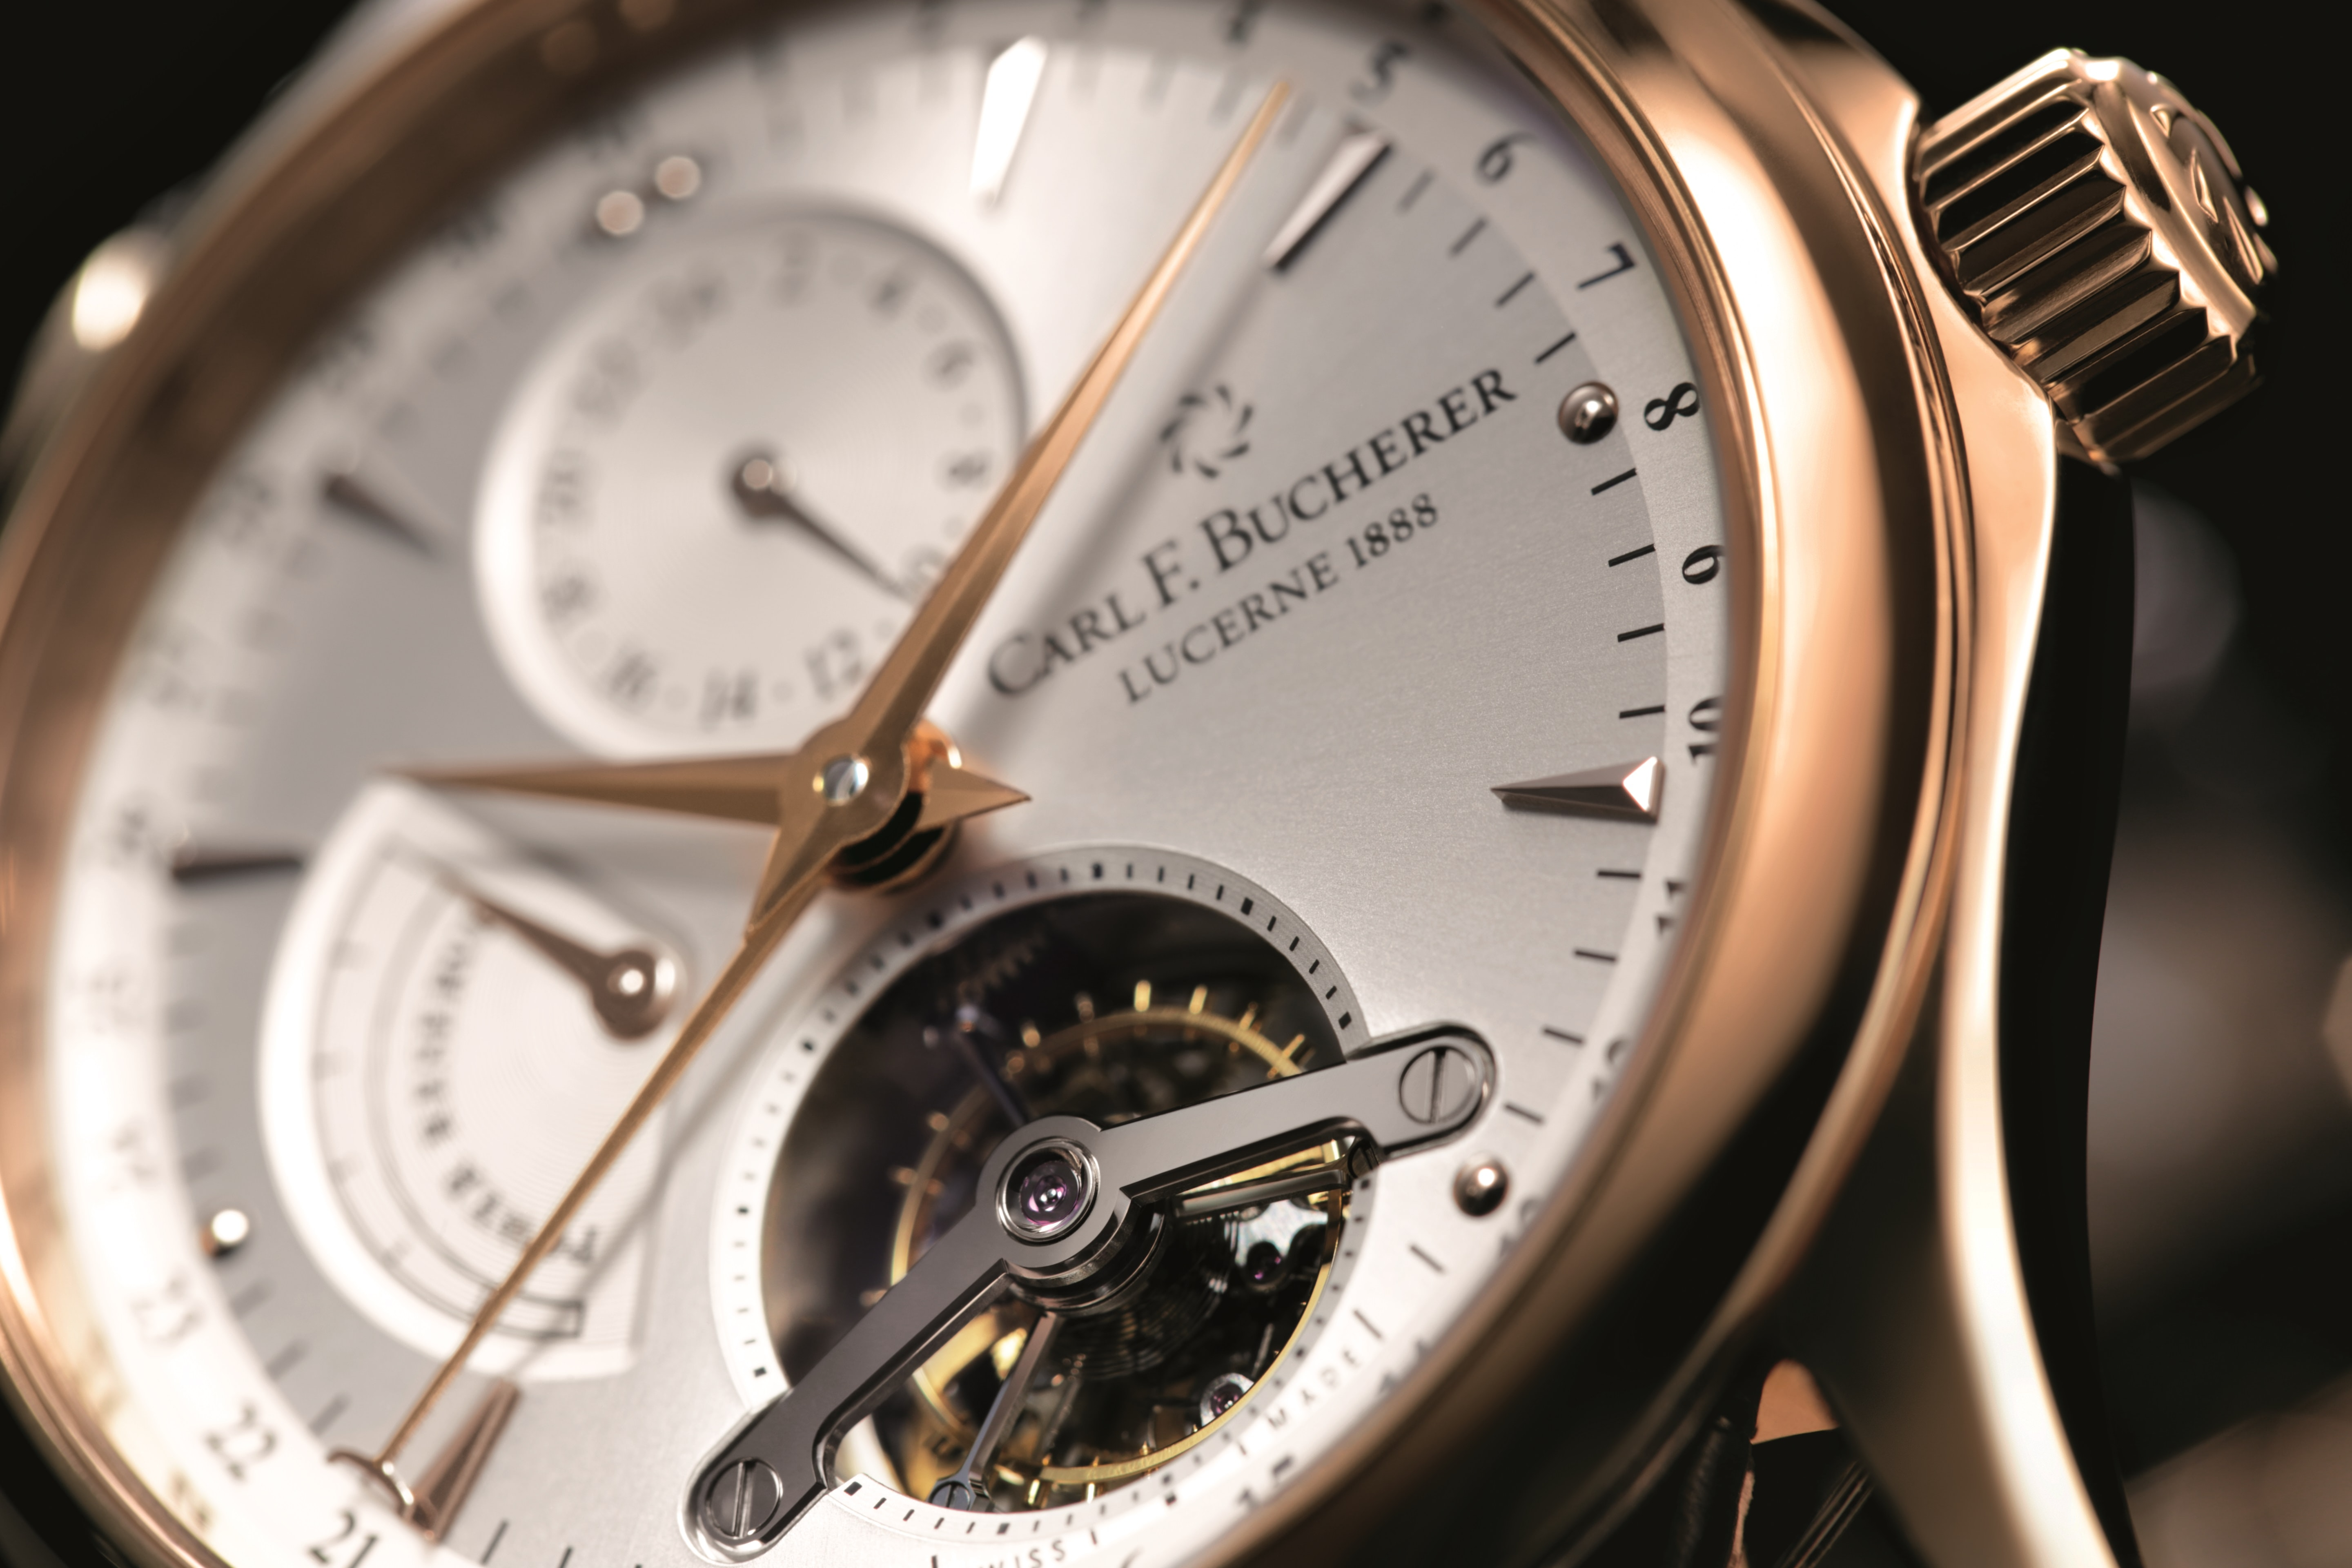 Win An All Expense Paid Trip For Two To Baselworld 2016, With Carl F. Bucherer Win An All Expense Paid Trip For Two To Baselworld 2016, With Carl F. Bucherer Manero Tourbillon